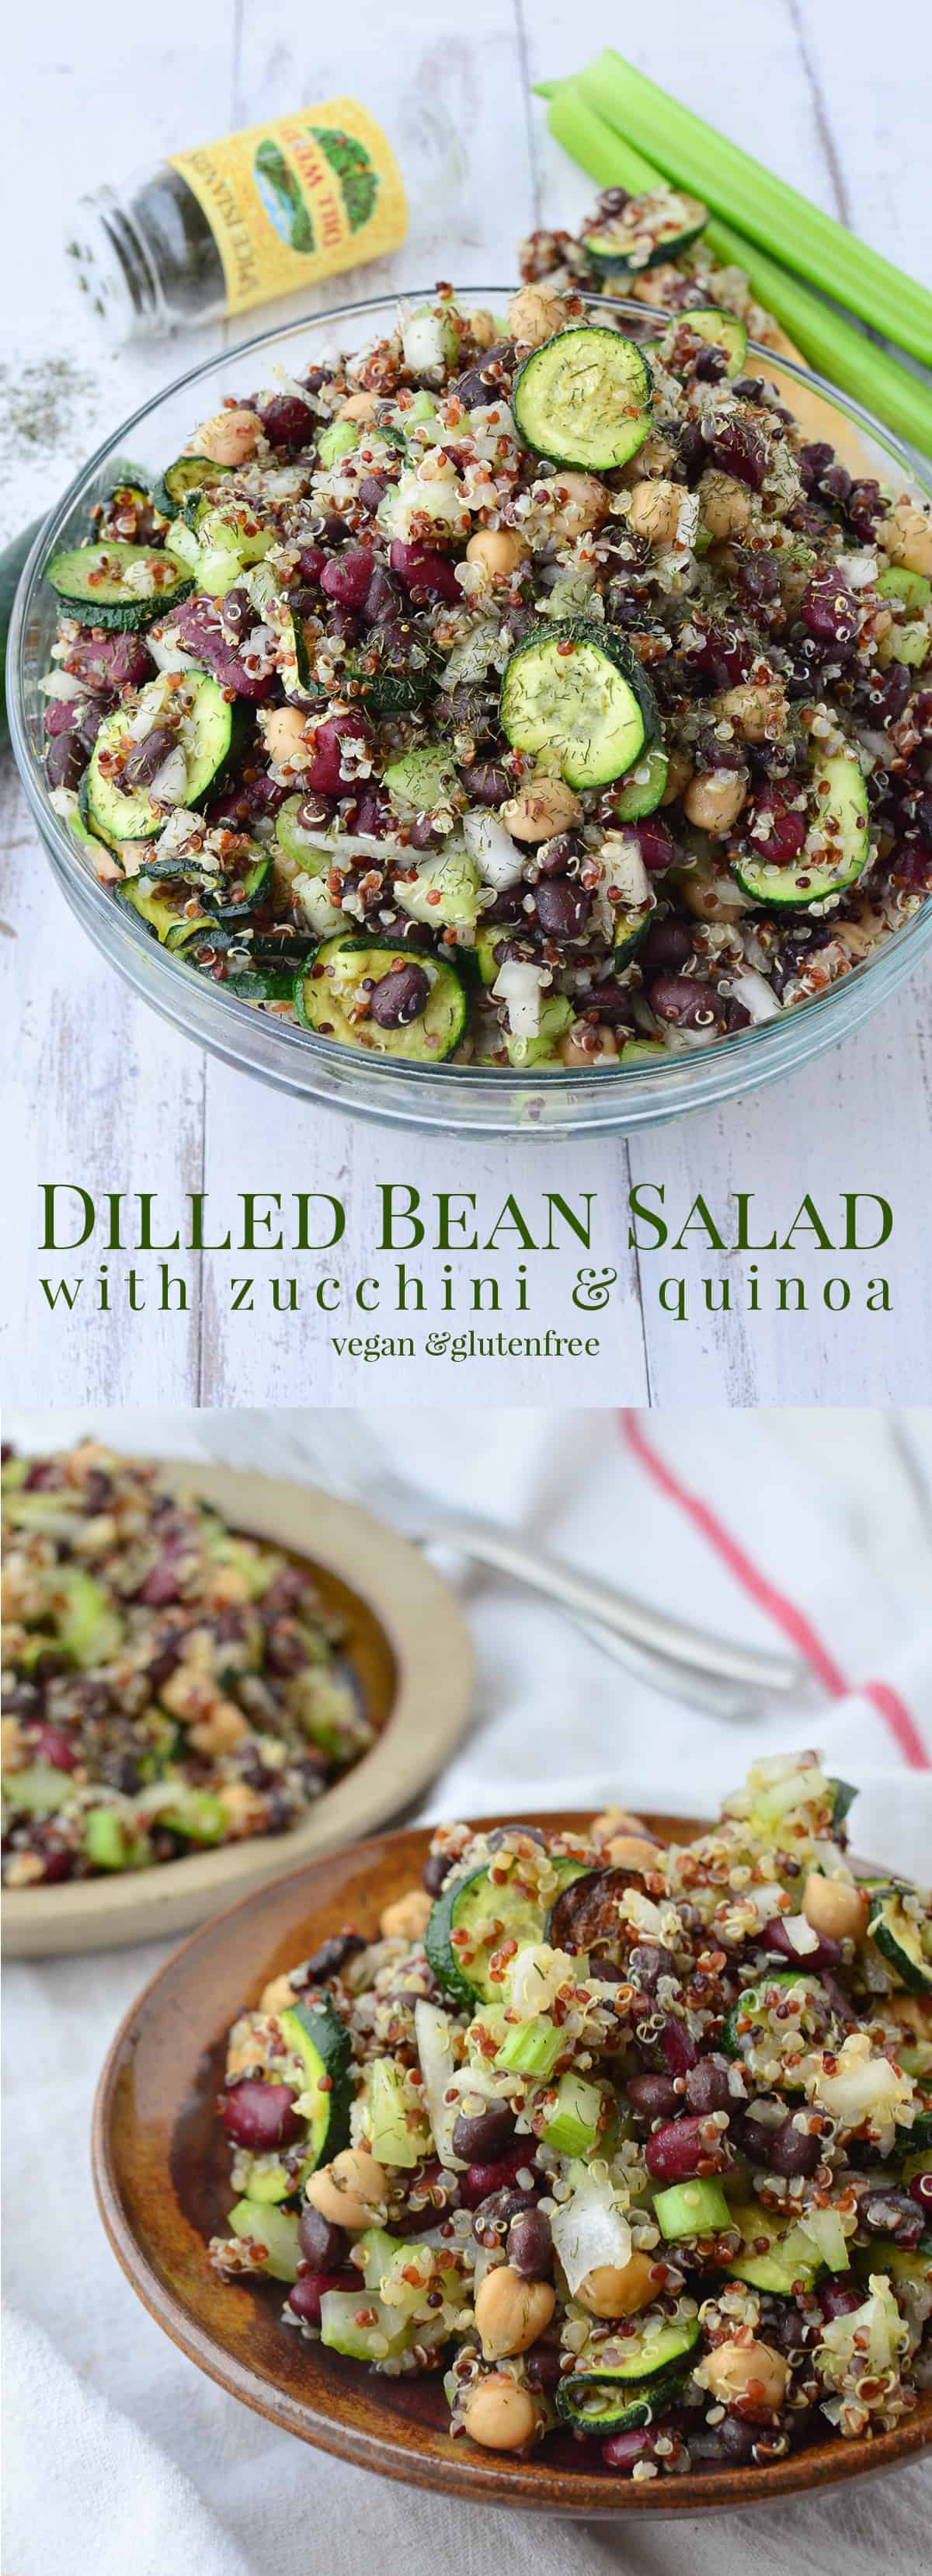 Perfect salad for your next cookout! Dilled Bean Salad with Zucchini and Quinoa! #vegan and #glutenfree   www.delishknowledge.com